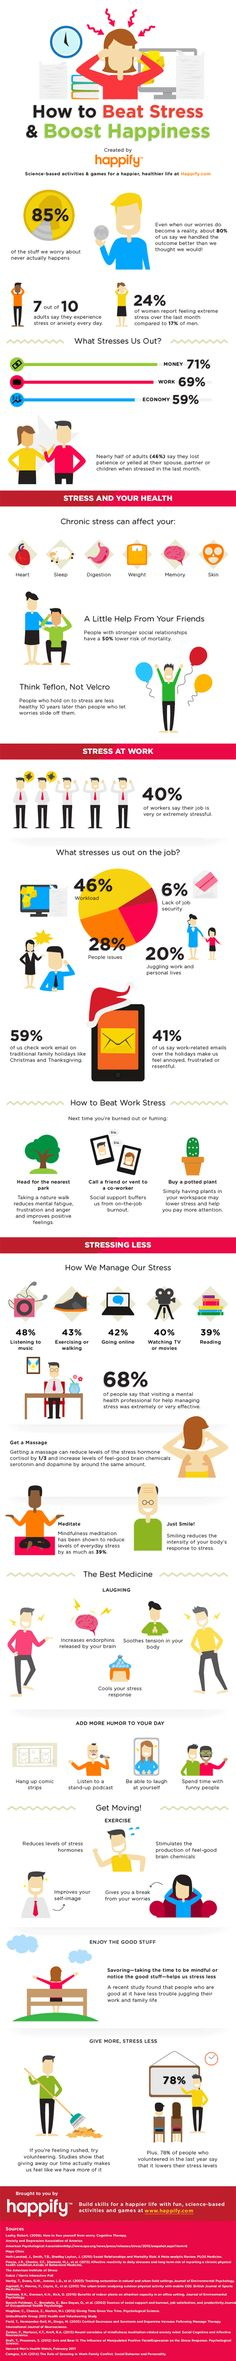 How To Be Happy And Beat Stress. Stress is harmful to anyone, but for those with anxiety, the stress can seem overwhelming. Here are some tips to manage stress and decrease anxiety. Ways To Reduce Stress, Stress Less, Stress And Anxiety, Stress Free, Stress Relief, Work Stress, Anxiety Relief, Health And Wellness, Health Tips